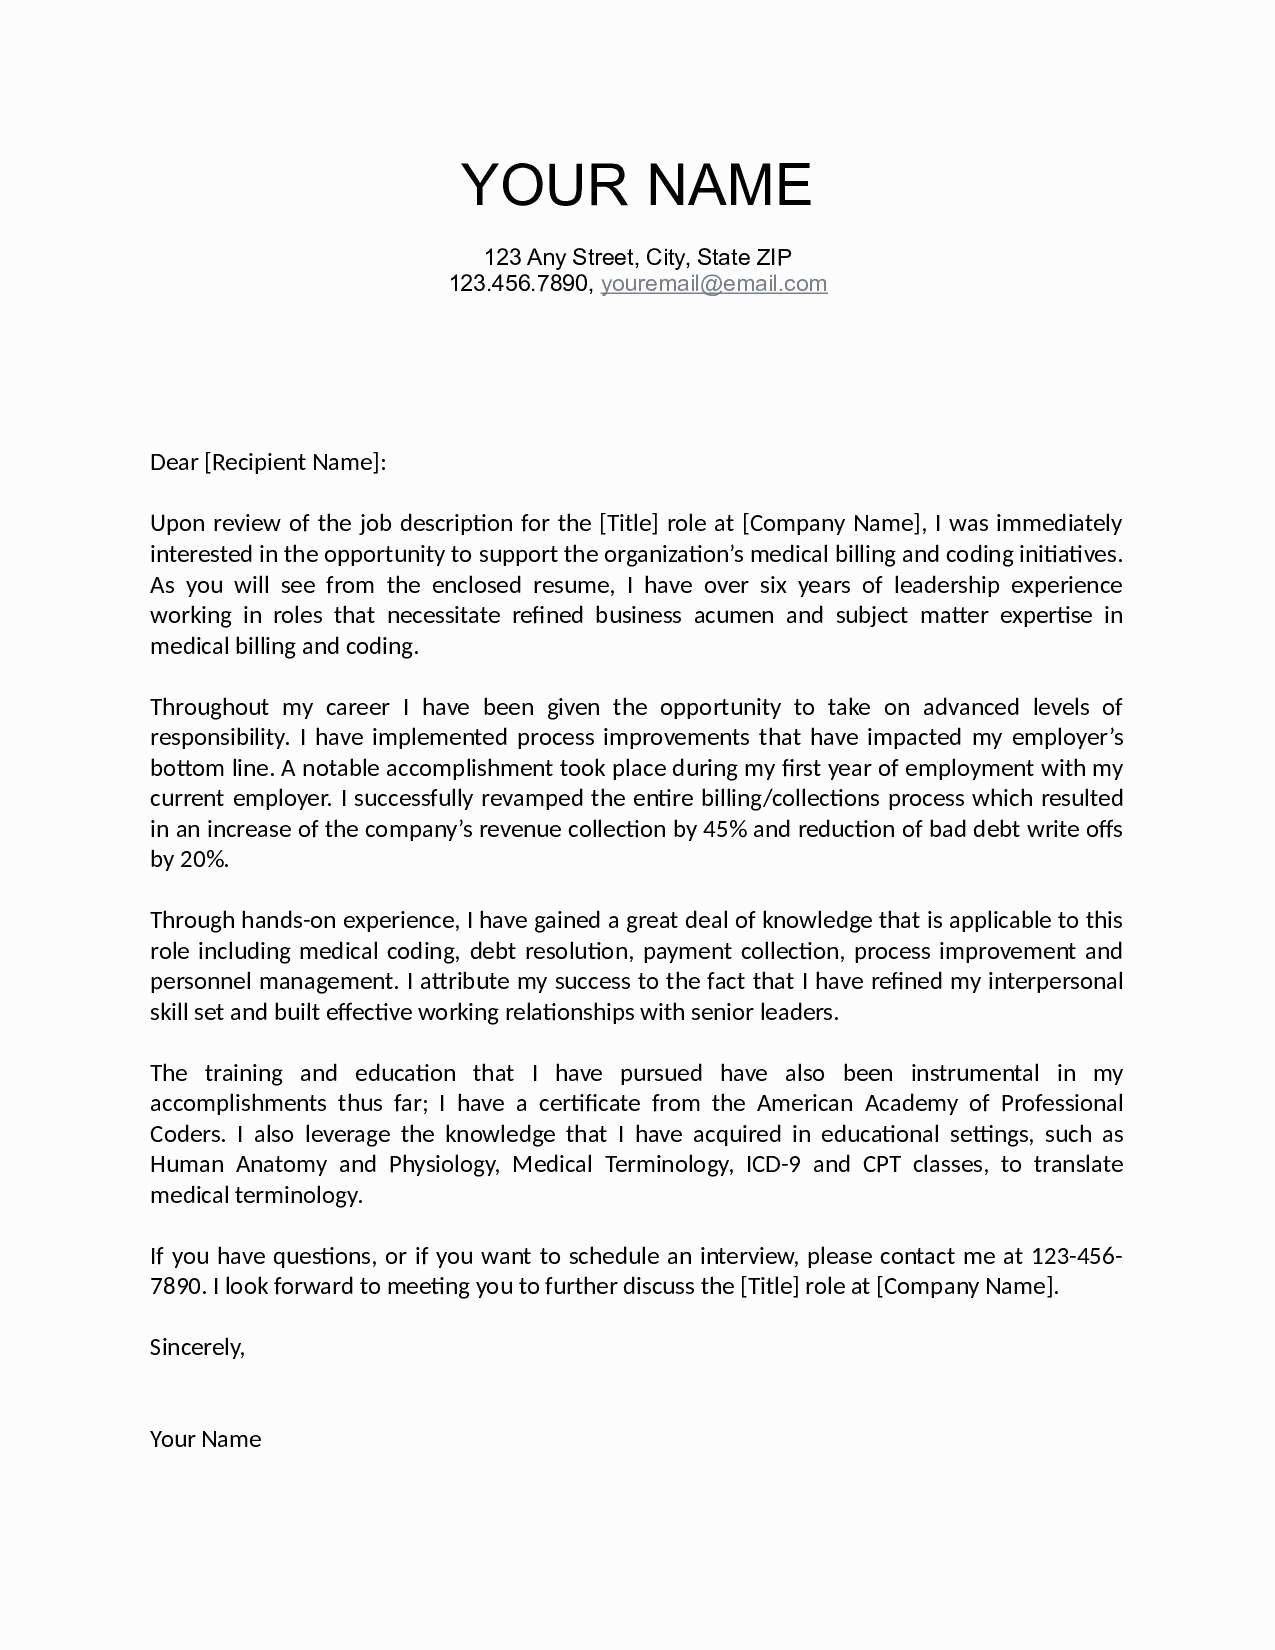 Good Cover Letter Template - Valid Sample Cover Letter for Job Vacancy